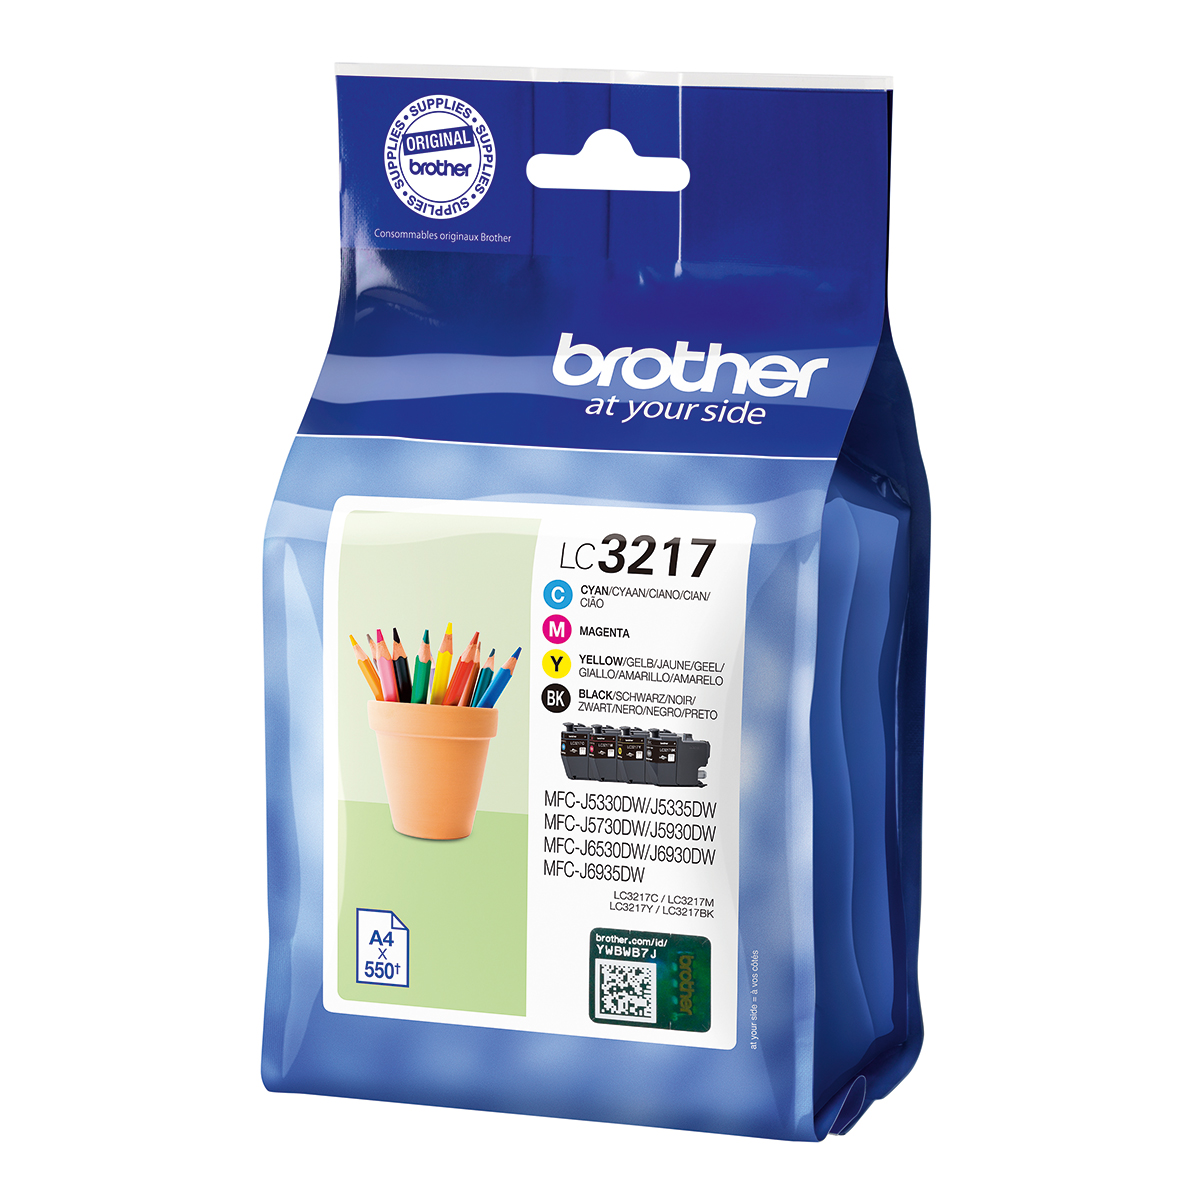 Brother LC3217 Value Pack